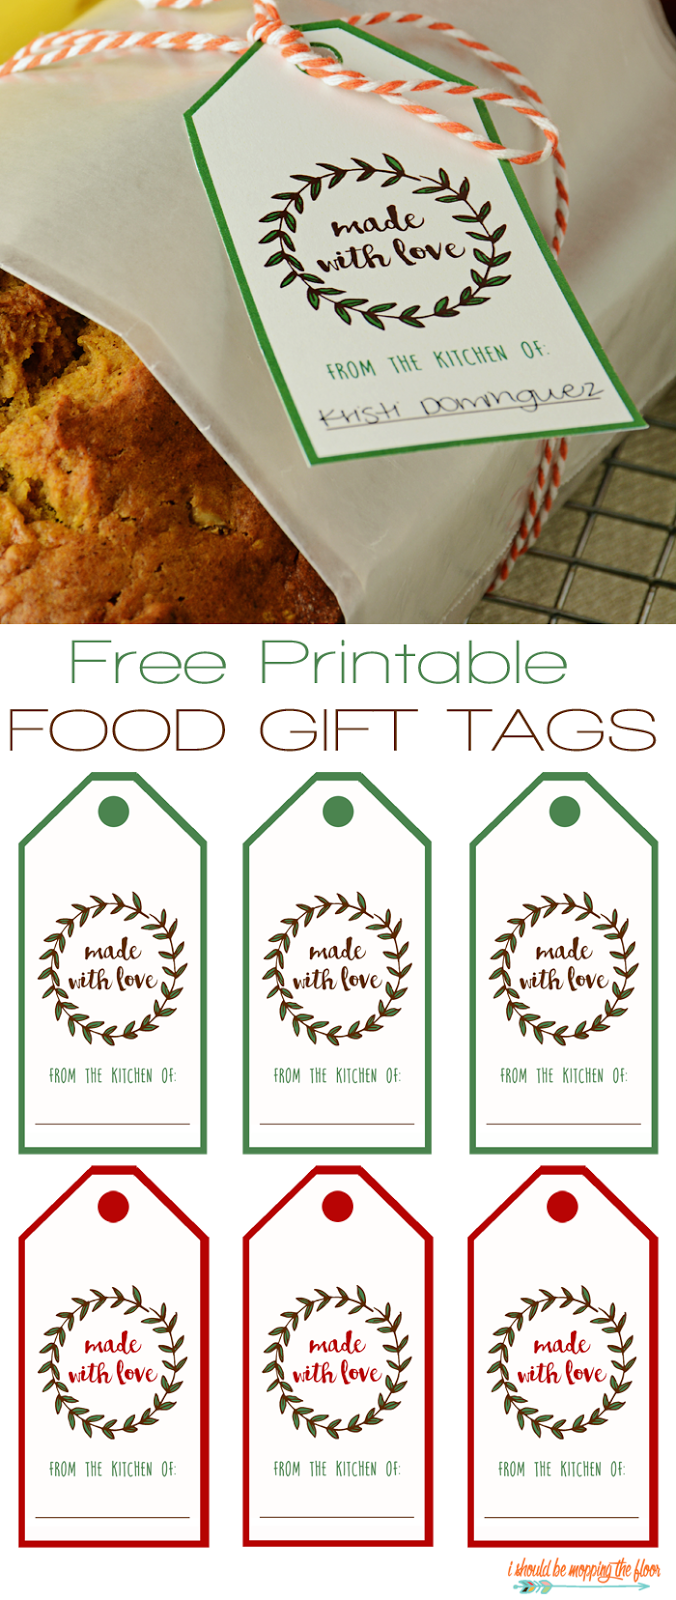 Free Printable Food Gift Tags Awesome Things